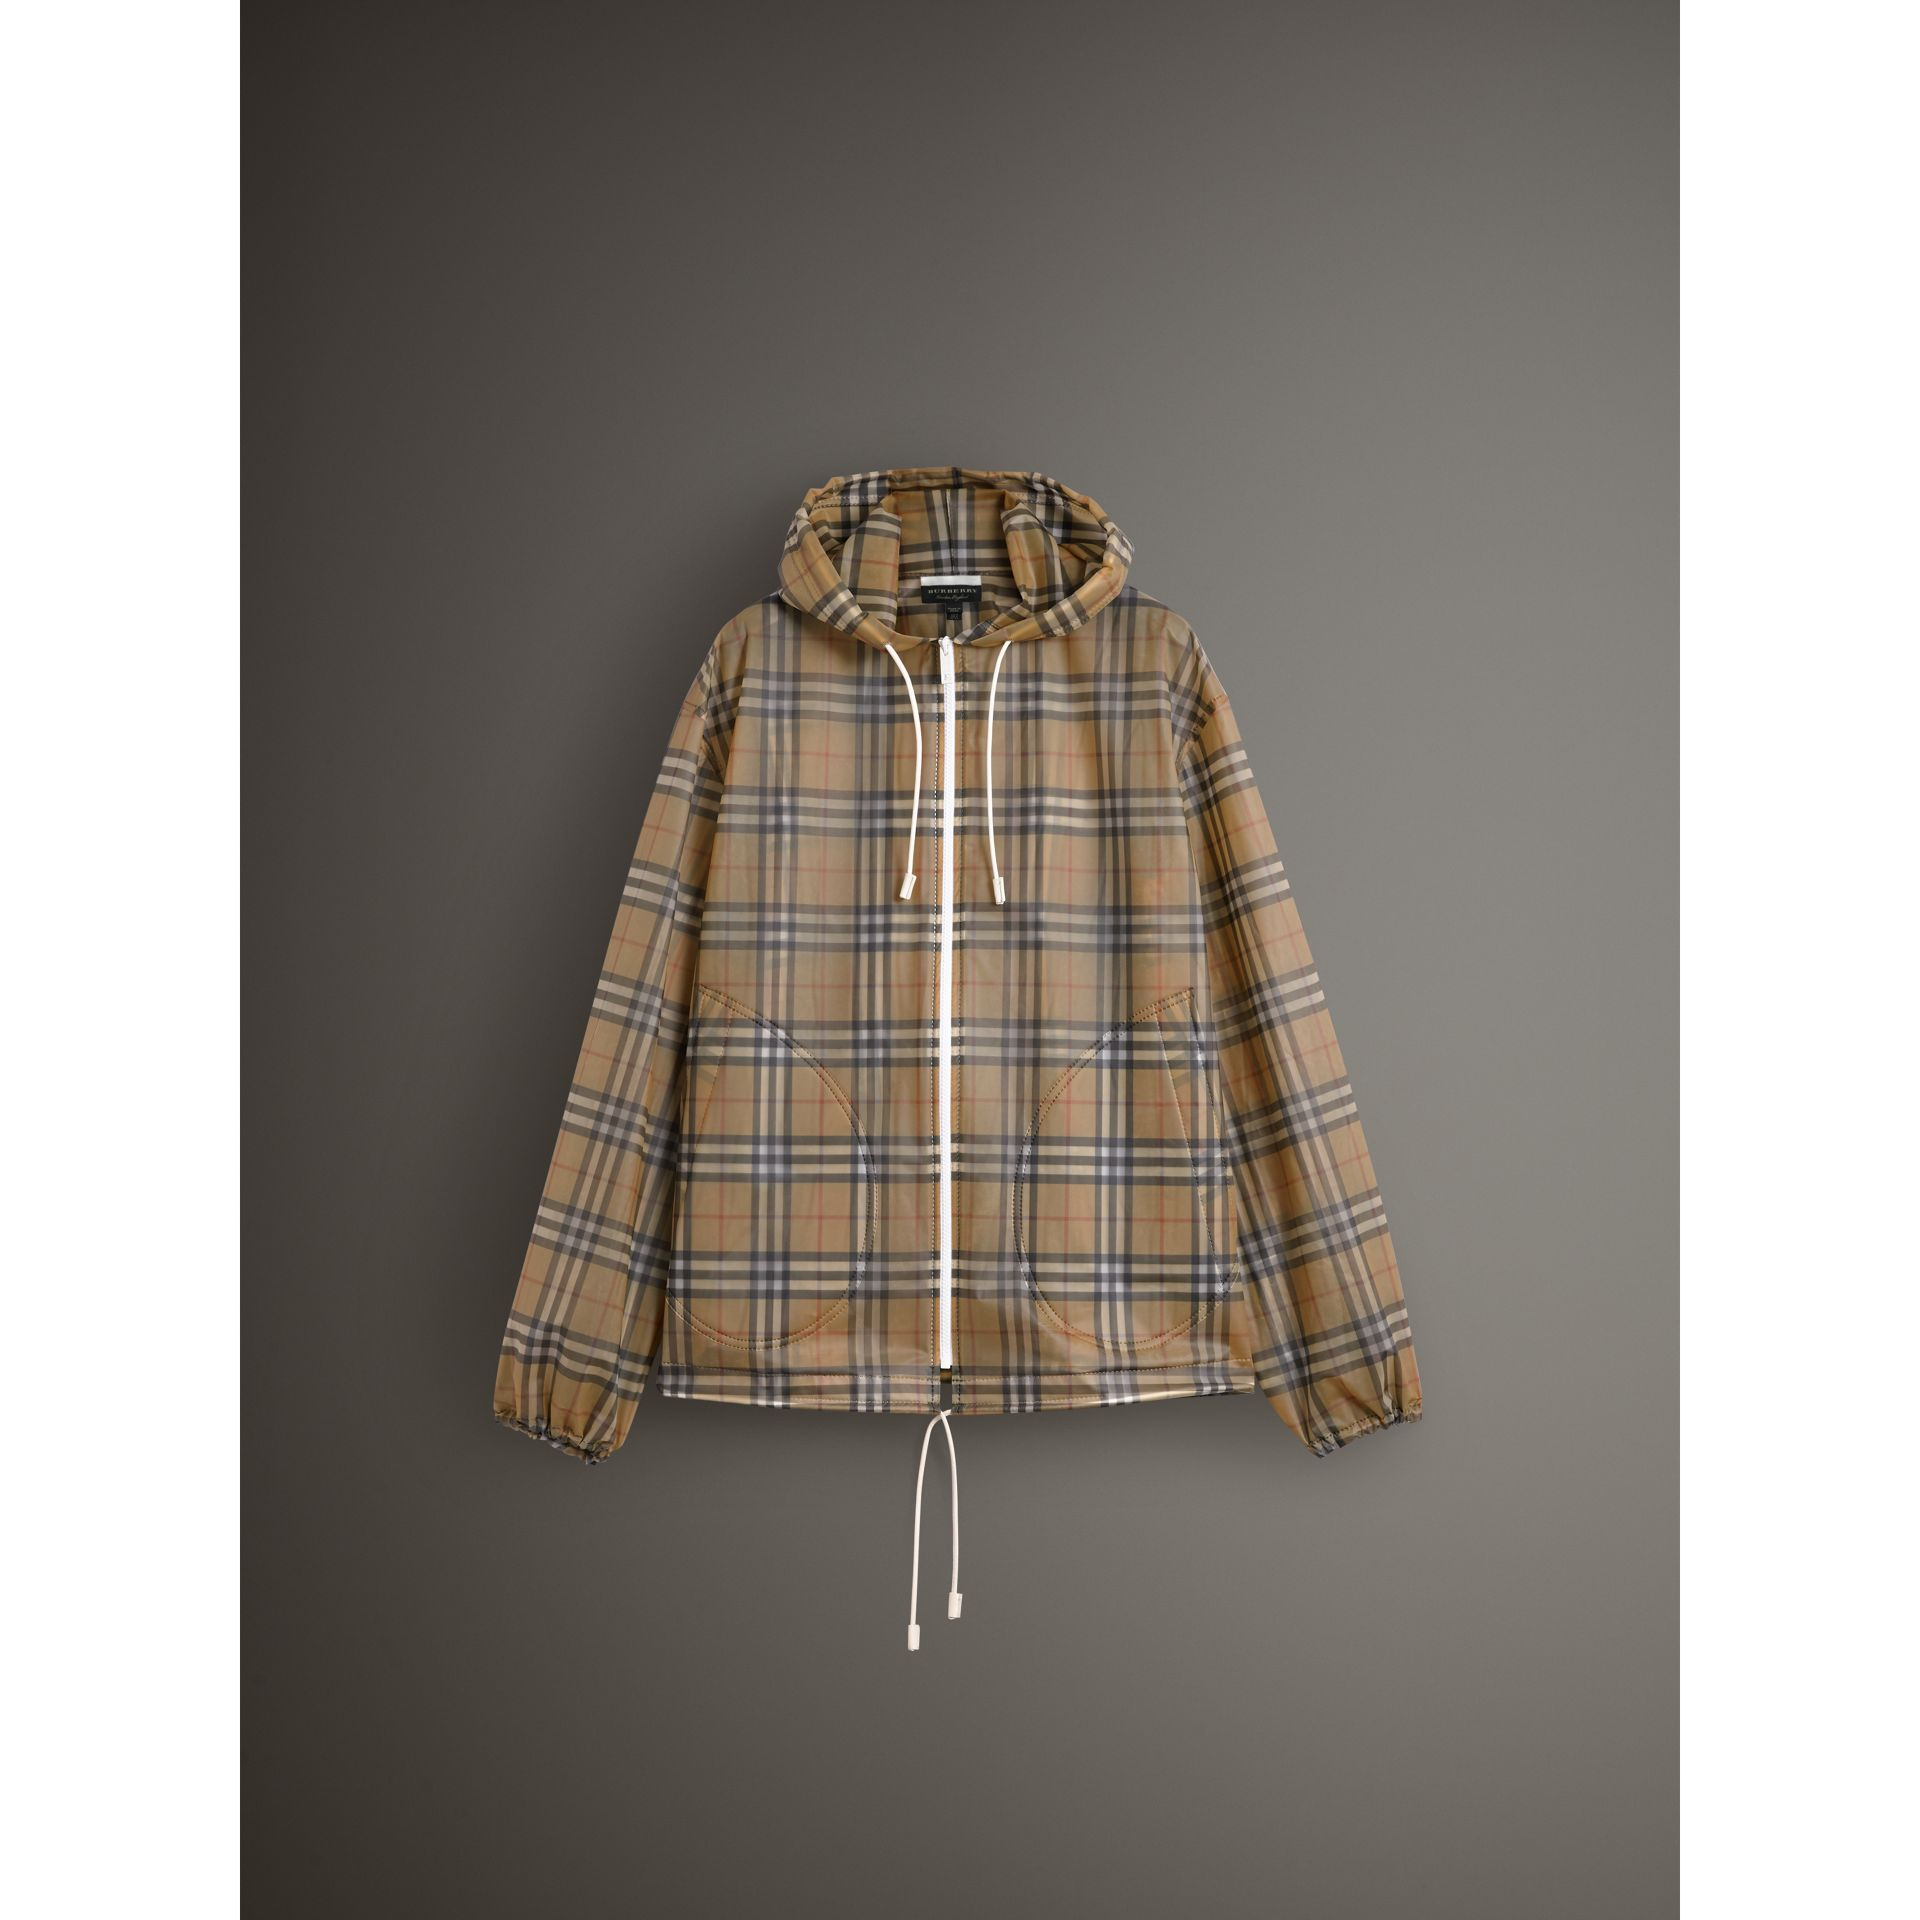 Anorak en plastique doux à motif Vintage check (Jaune Antique) - Femme | Burberry - photo de la galerie 3